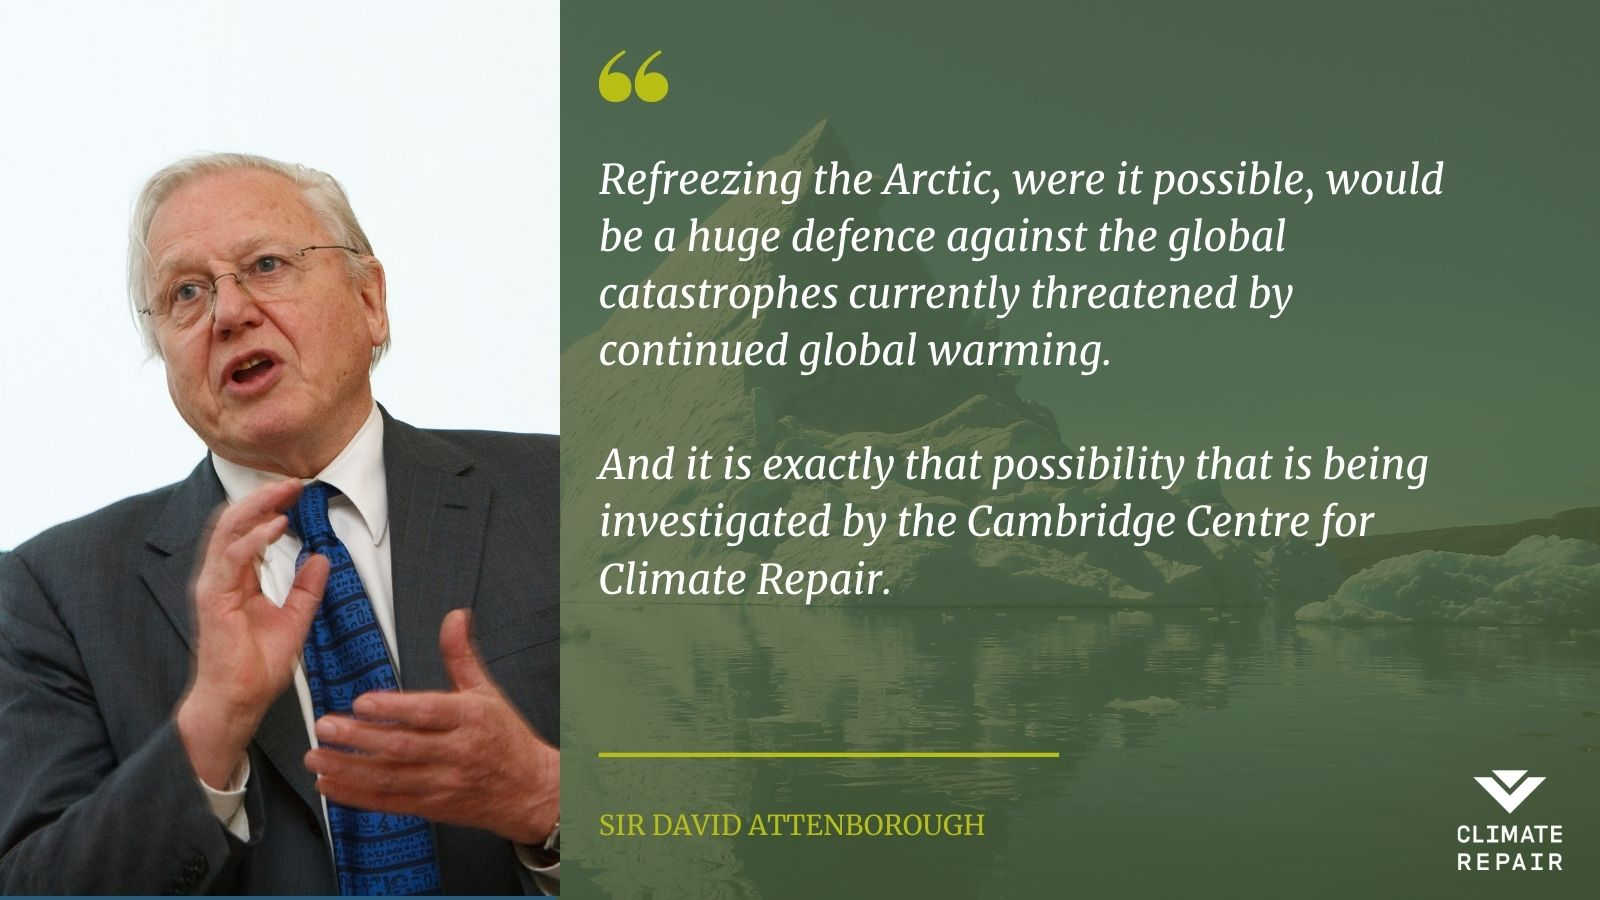 Sir David Attenbourgh quote